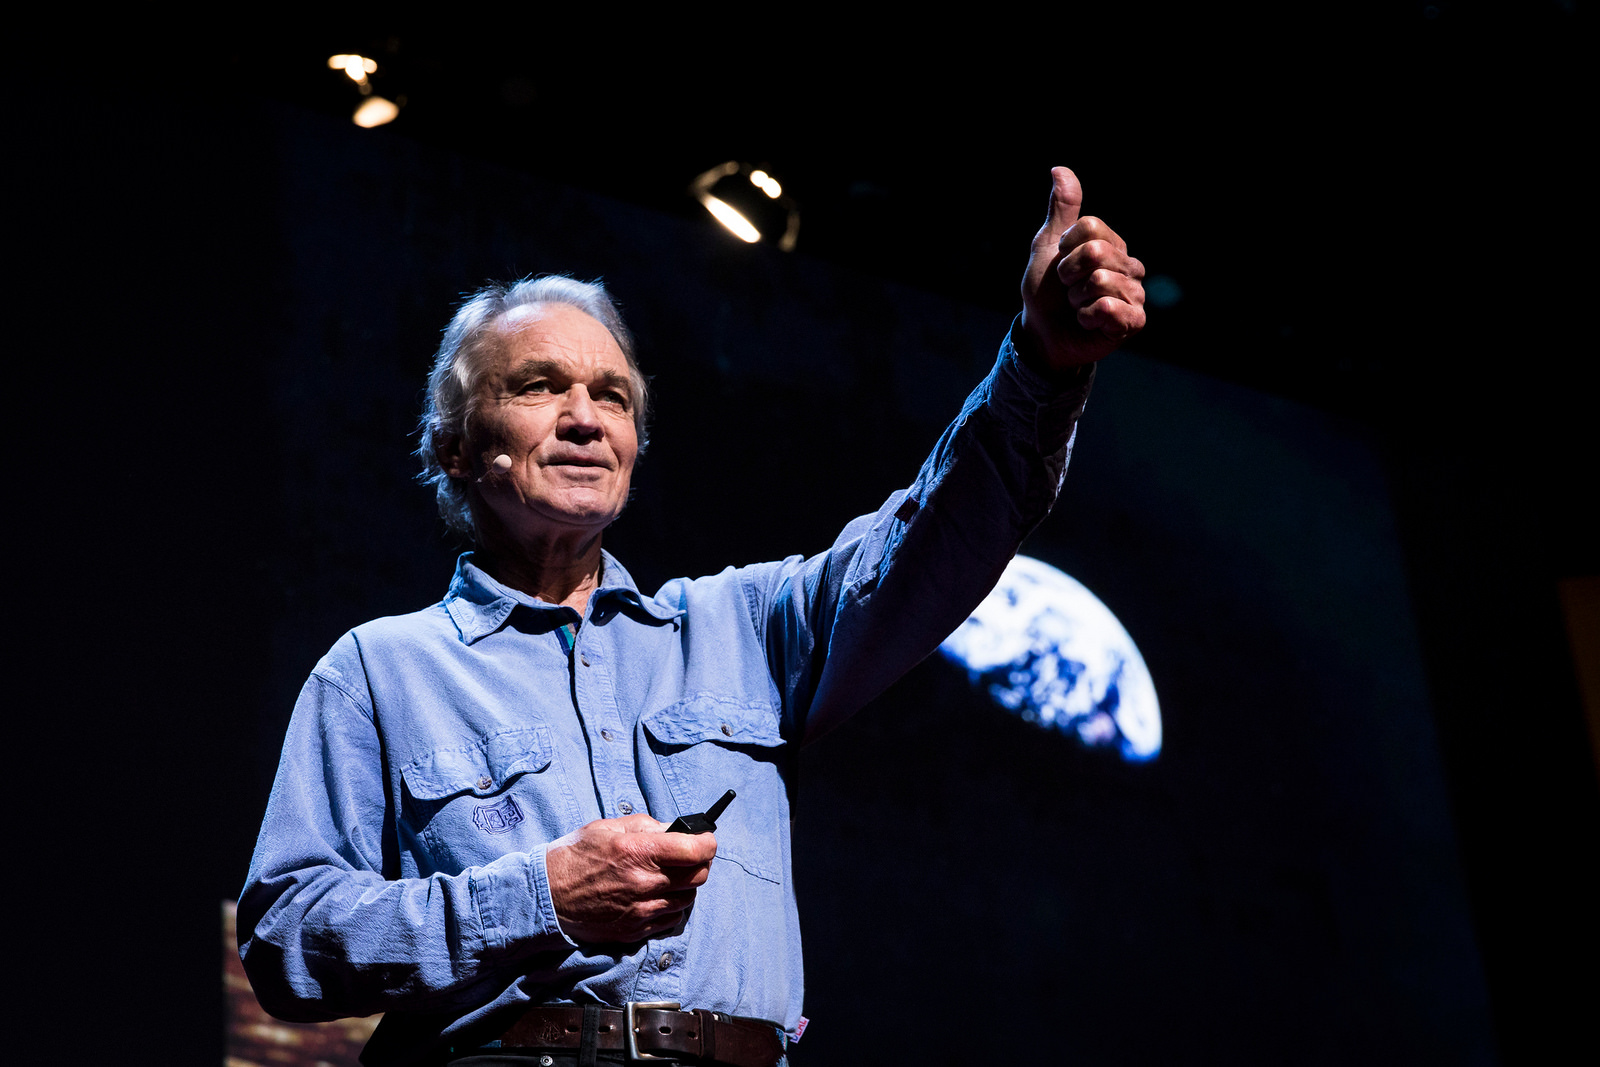 Ian McCallum speaks at TEDWomen 2016: It's About Time, October 26-28, 2016, in San Francisco. Photo: Marla Aufmuth / TED